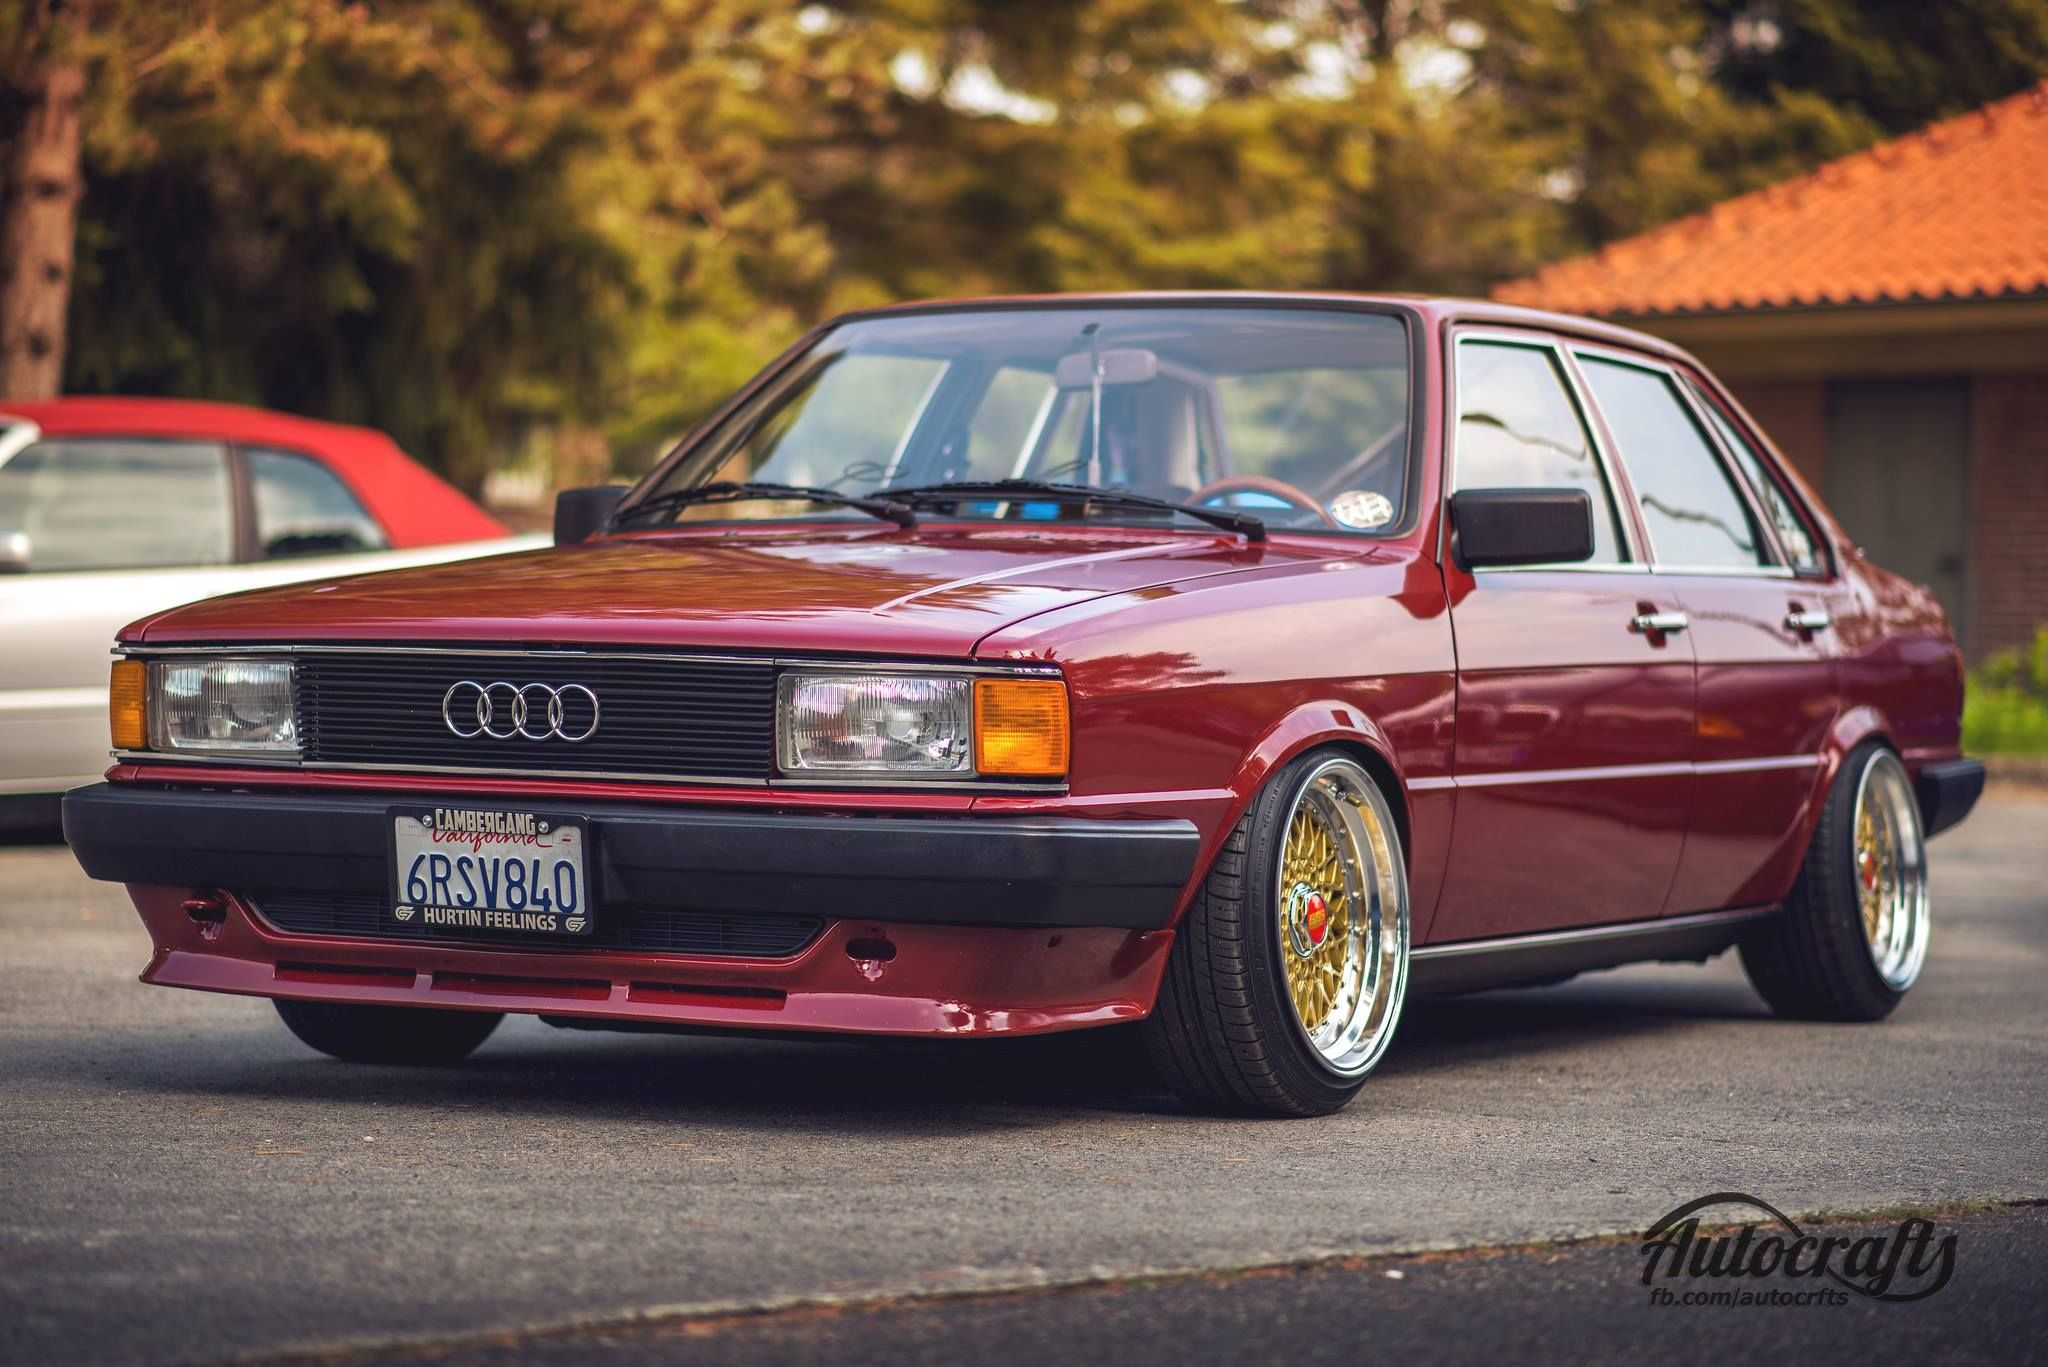 Audi Youngtimer.   _____________________  Photo: Autocrafts